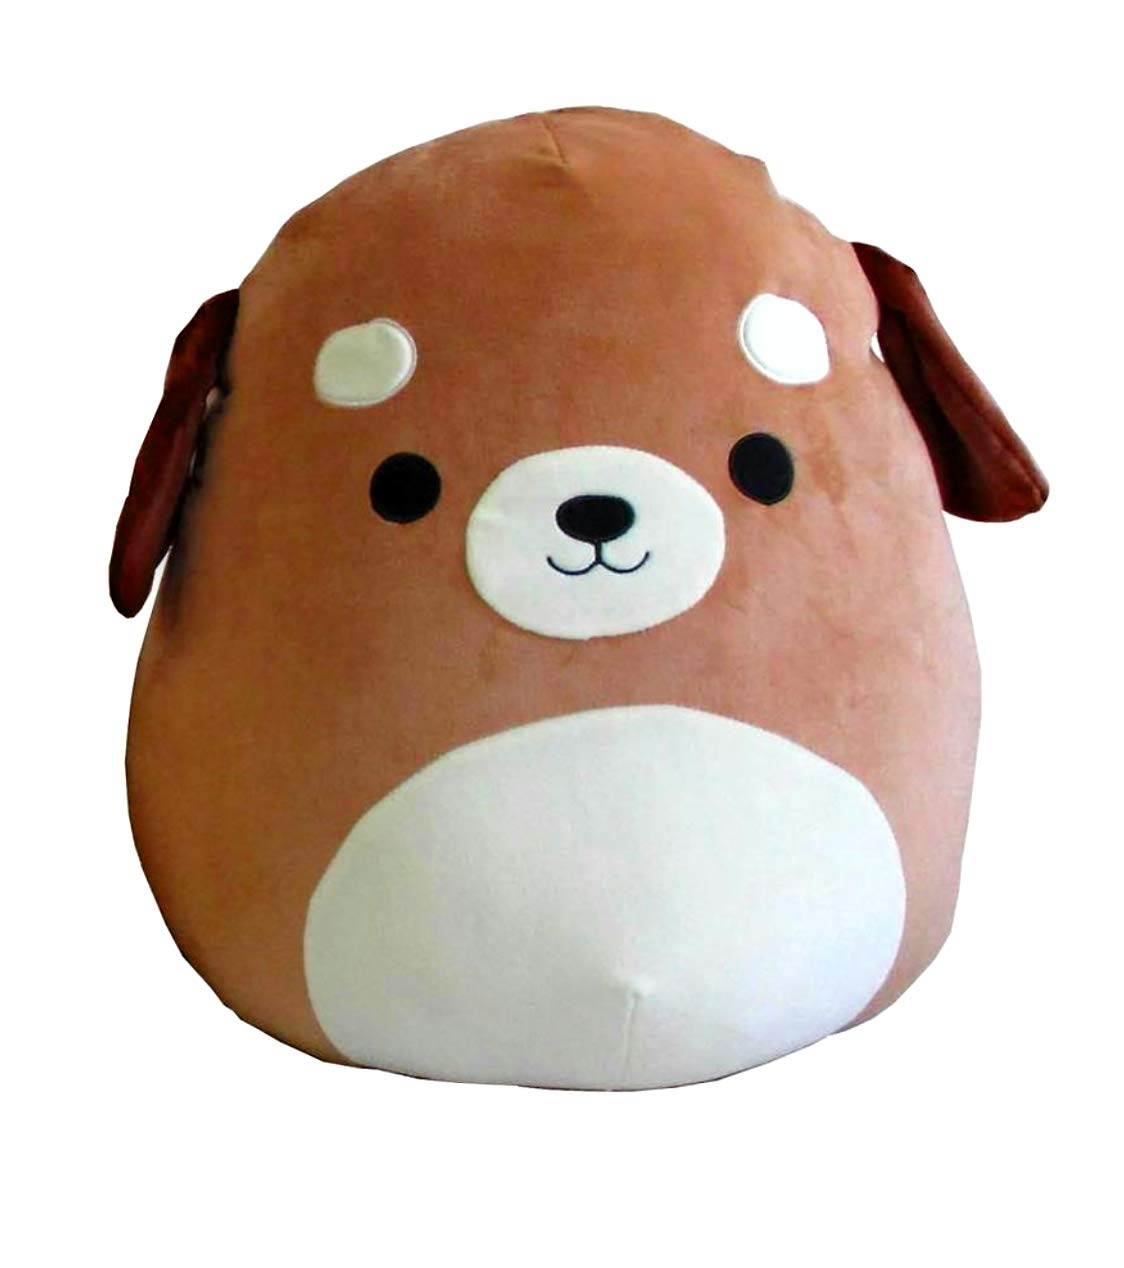 Squishmallow Large Pillow Plush Toy, 16 inches (Dog by Squishmallow